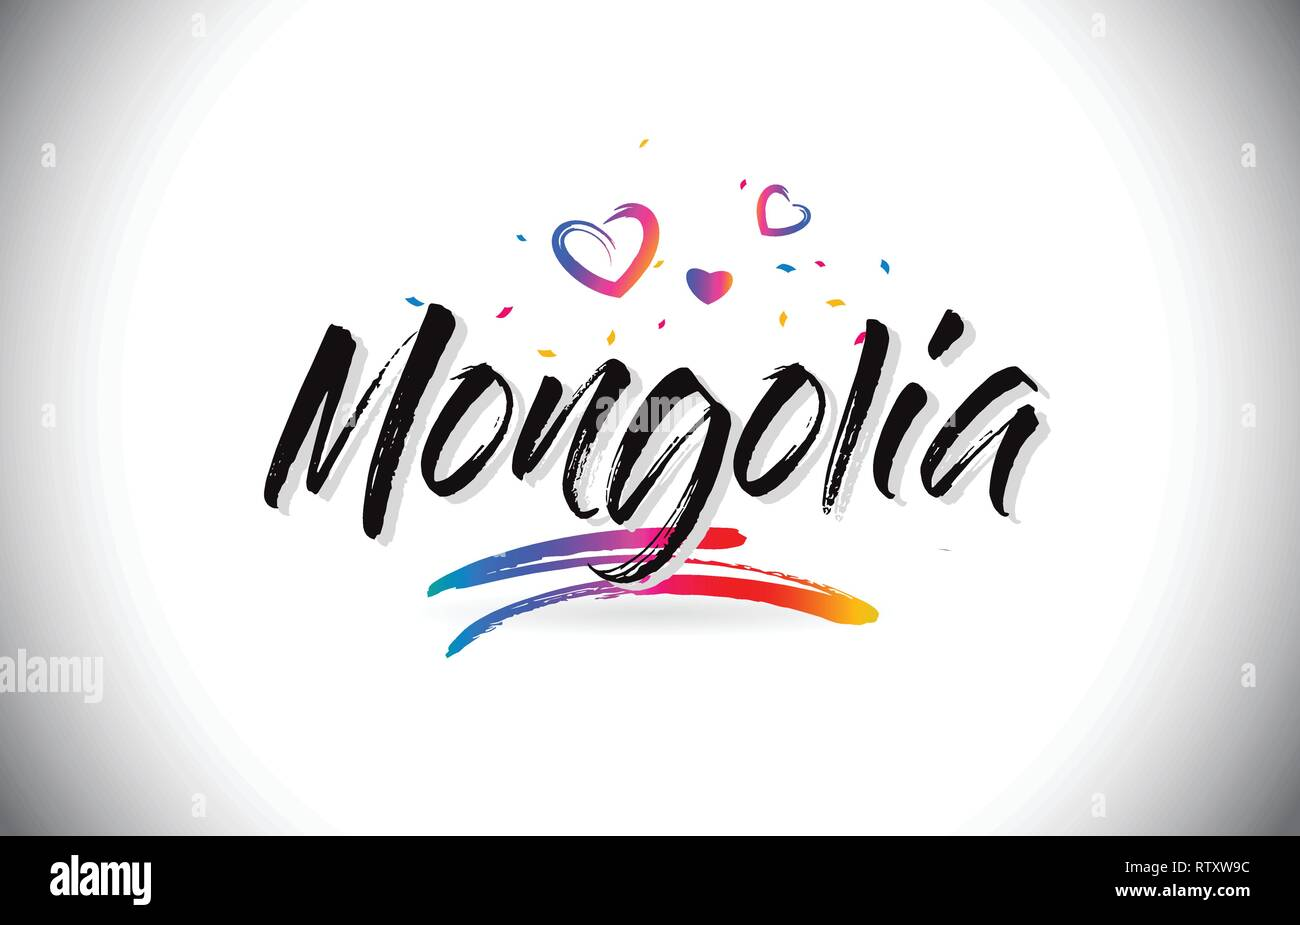 Mongolia Welcome To Word Text with Love Hearts and Creative Handwritten Font Design Vector Illustration. - Stock Vector